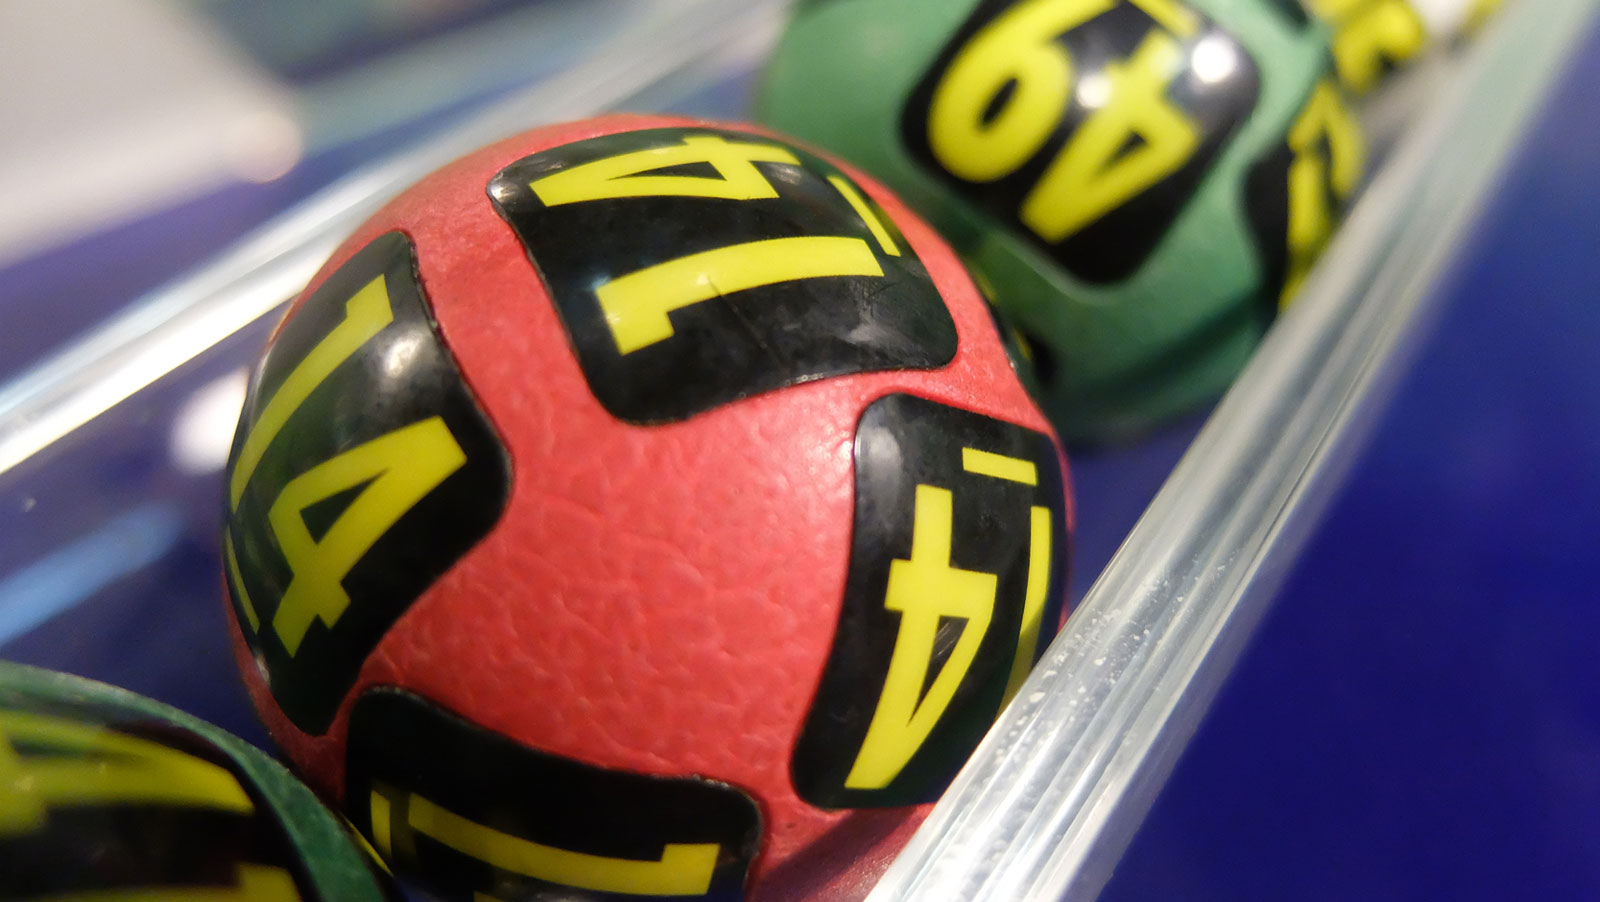 tabcorp-denies-rumors-it-will-spin-off-lottery-biz